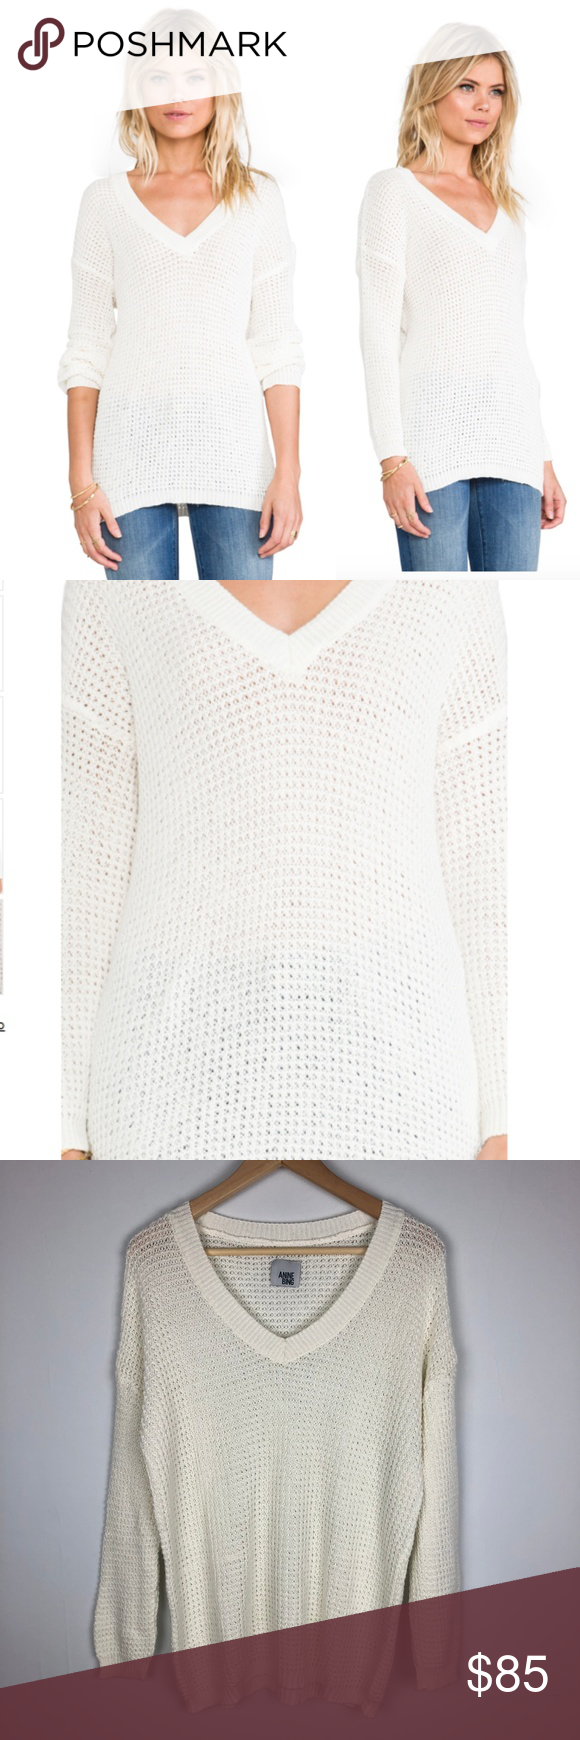 Anine Bing White Knitted V-neck Sweater Size Med Gorgeous Anine Bing White  Knitted V-neck Sweater in LIKE NEW condition! No flaws 0ed24a2f0